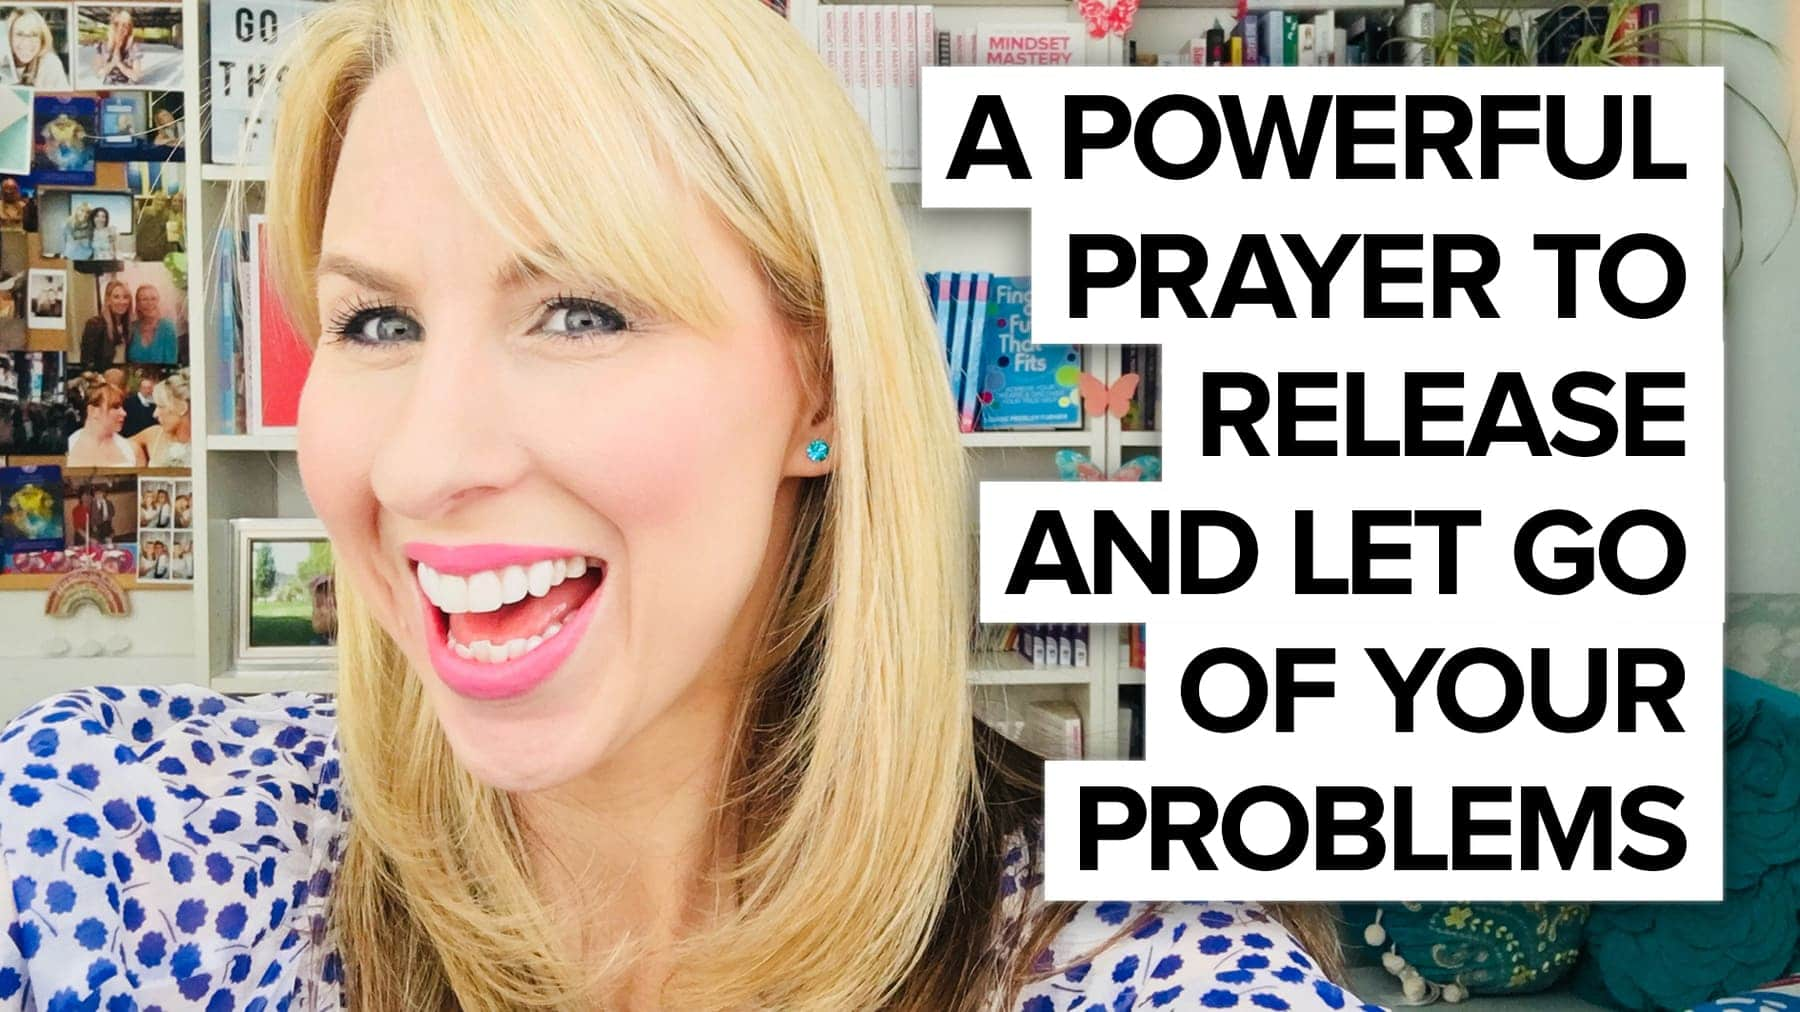 Powerful prayer to help release & let go!